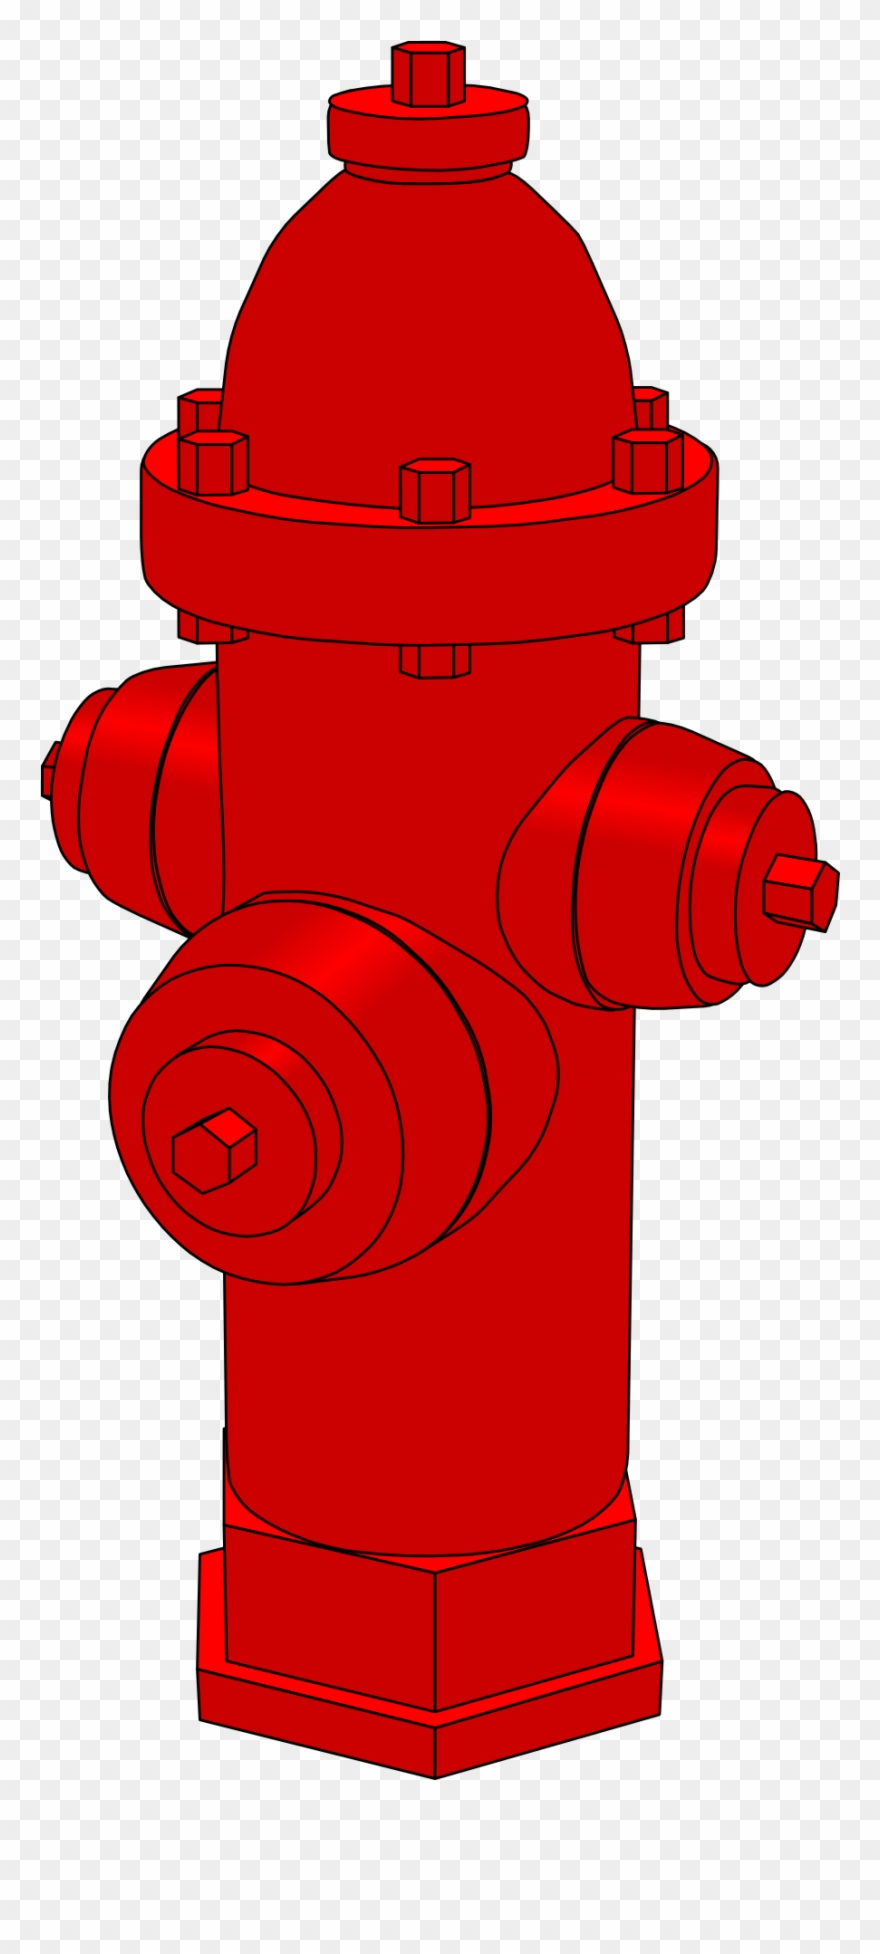 hight resolution of fire hydrant fire hydrant png clip art transparent png